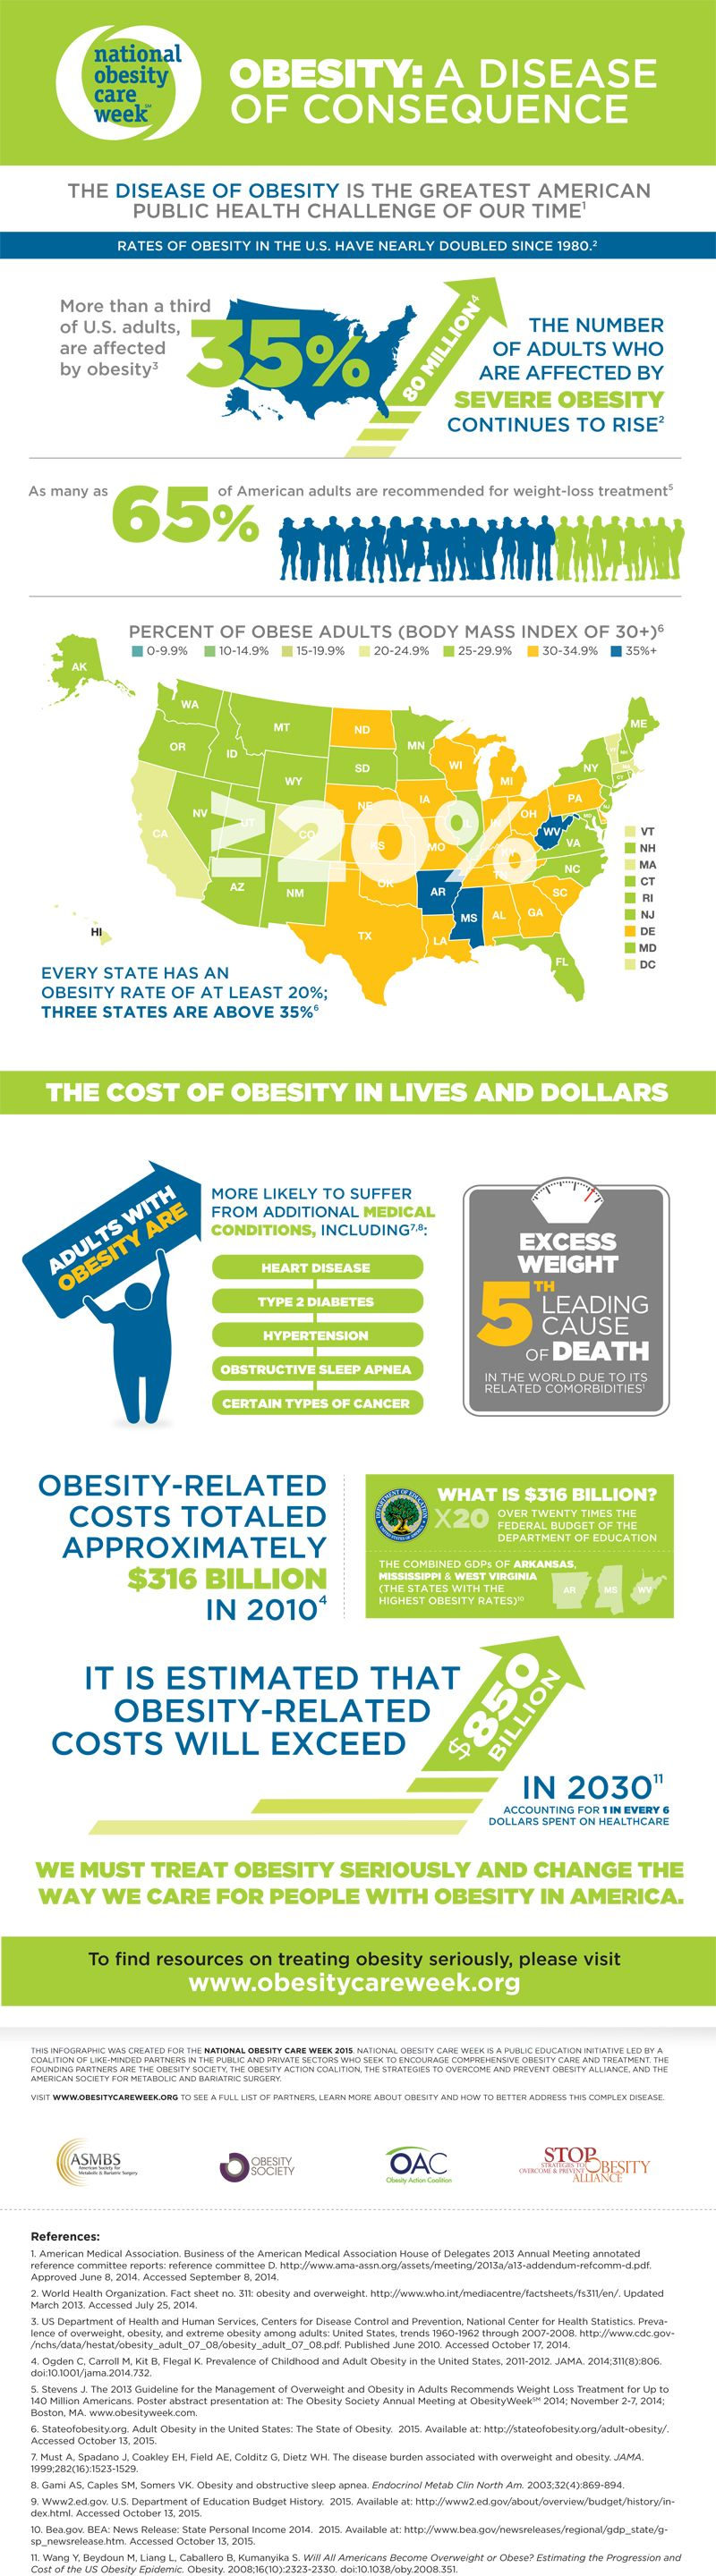 A Disease of Consequence Infographic Obesity: A Disease of Consequence Infographic, the disease of obesity is the greatest american public health challenge of our time!Obesity: A Disease of Consequence Infographic, the disease of obesity is the greatest american public health challenge of our time!